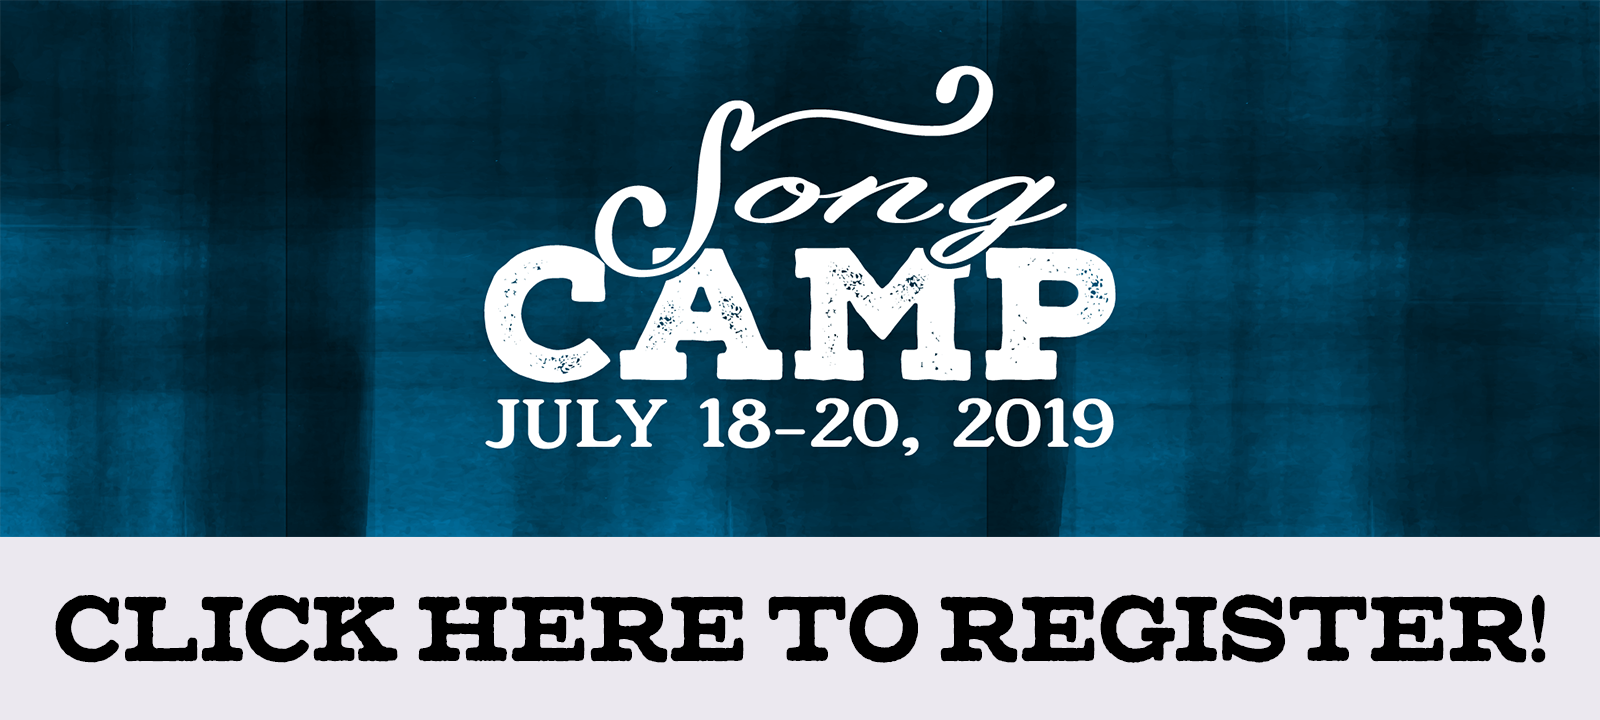 Song Camp 2019 | Nashville Songwriters Association International